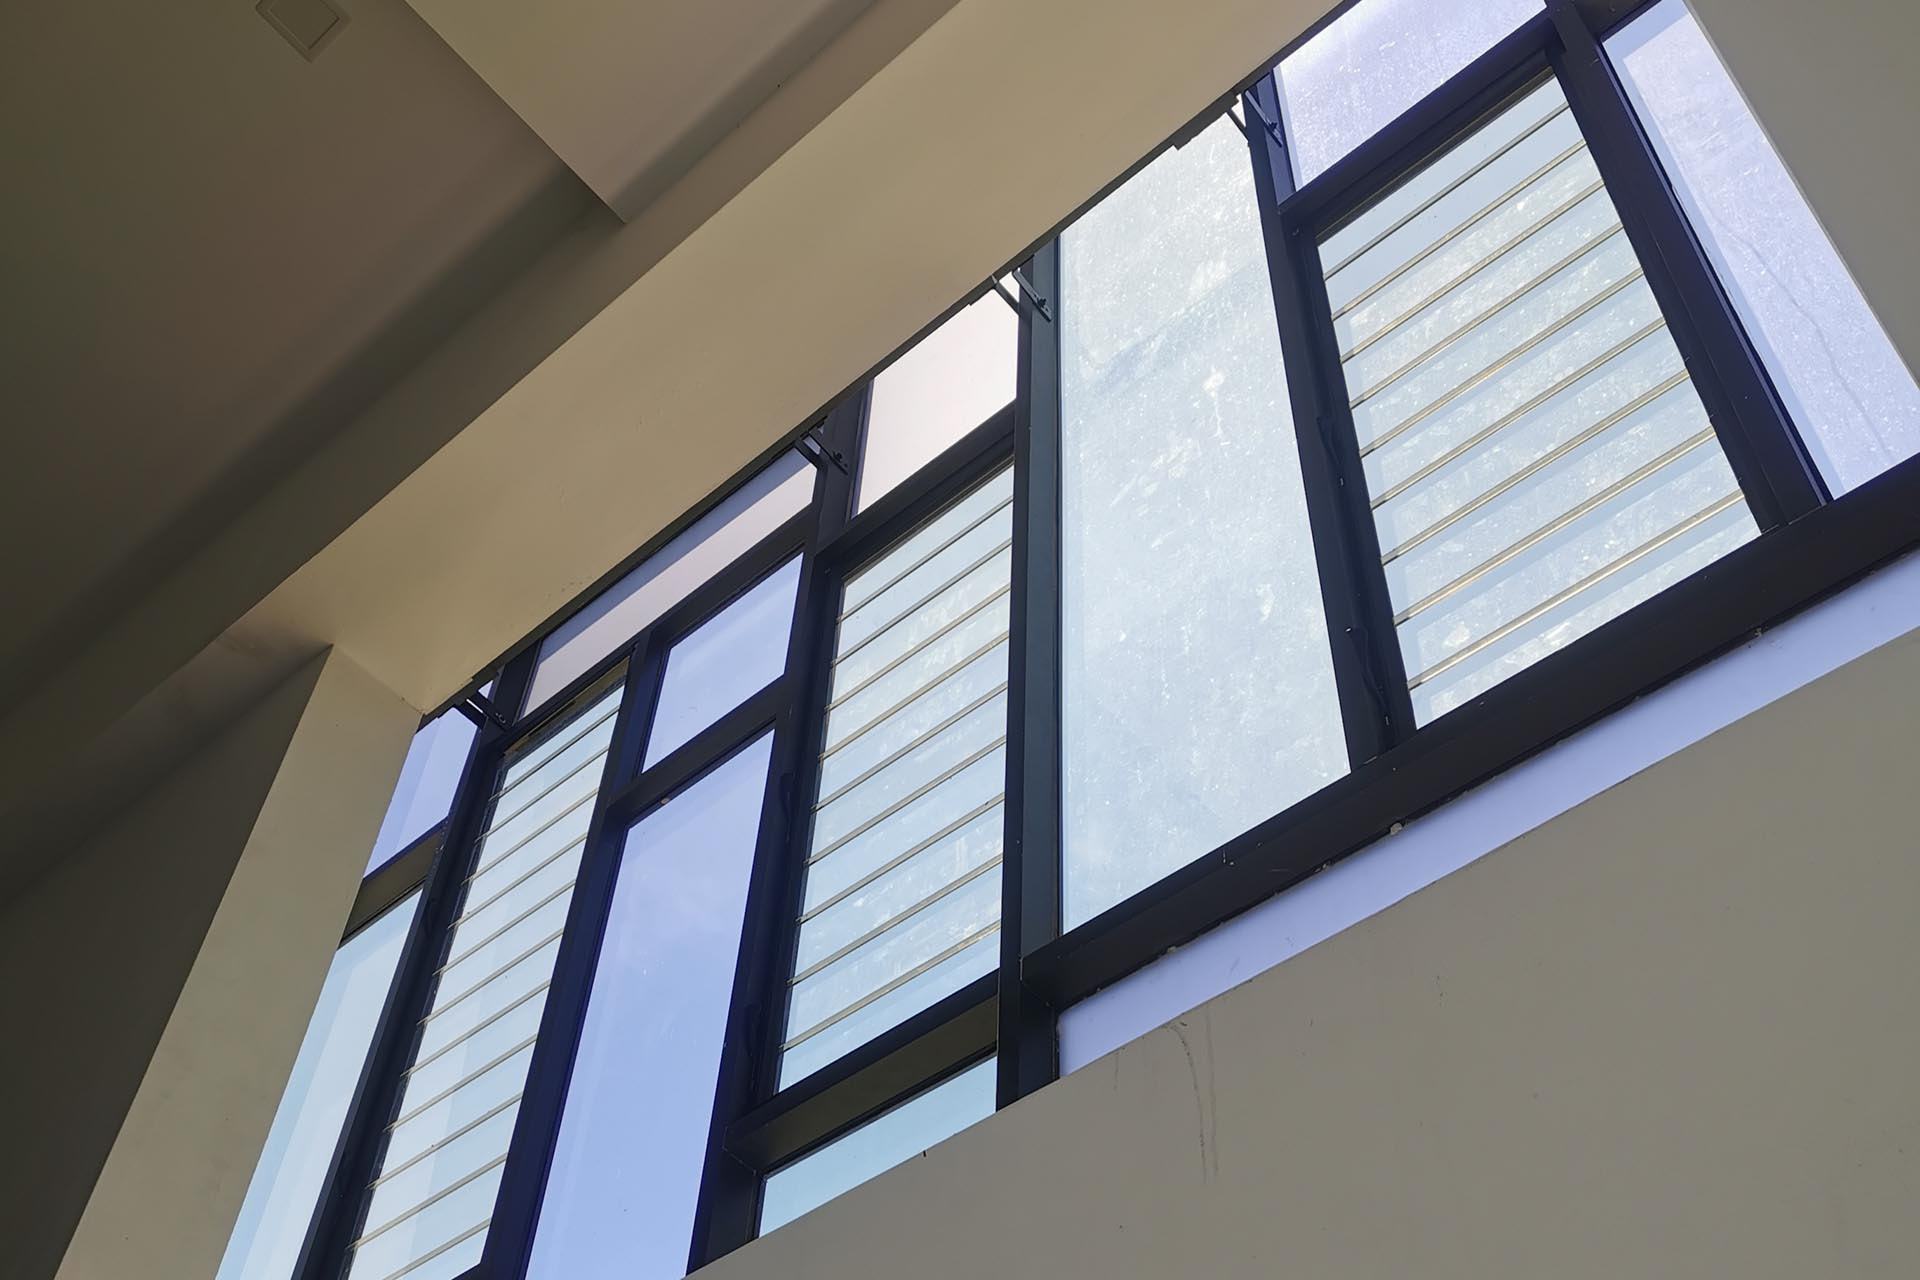 Allow light and ventilation with Breezway Louvre Windows